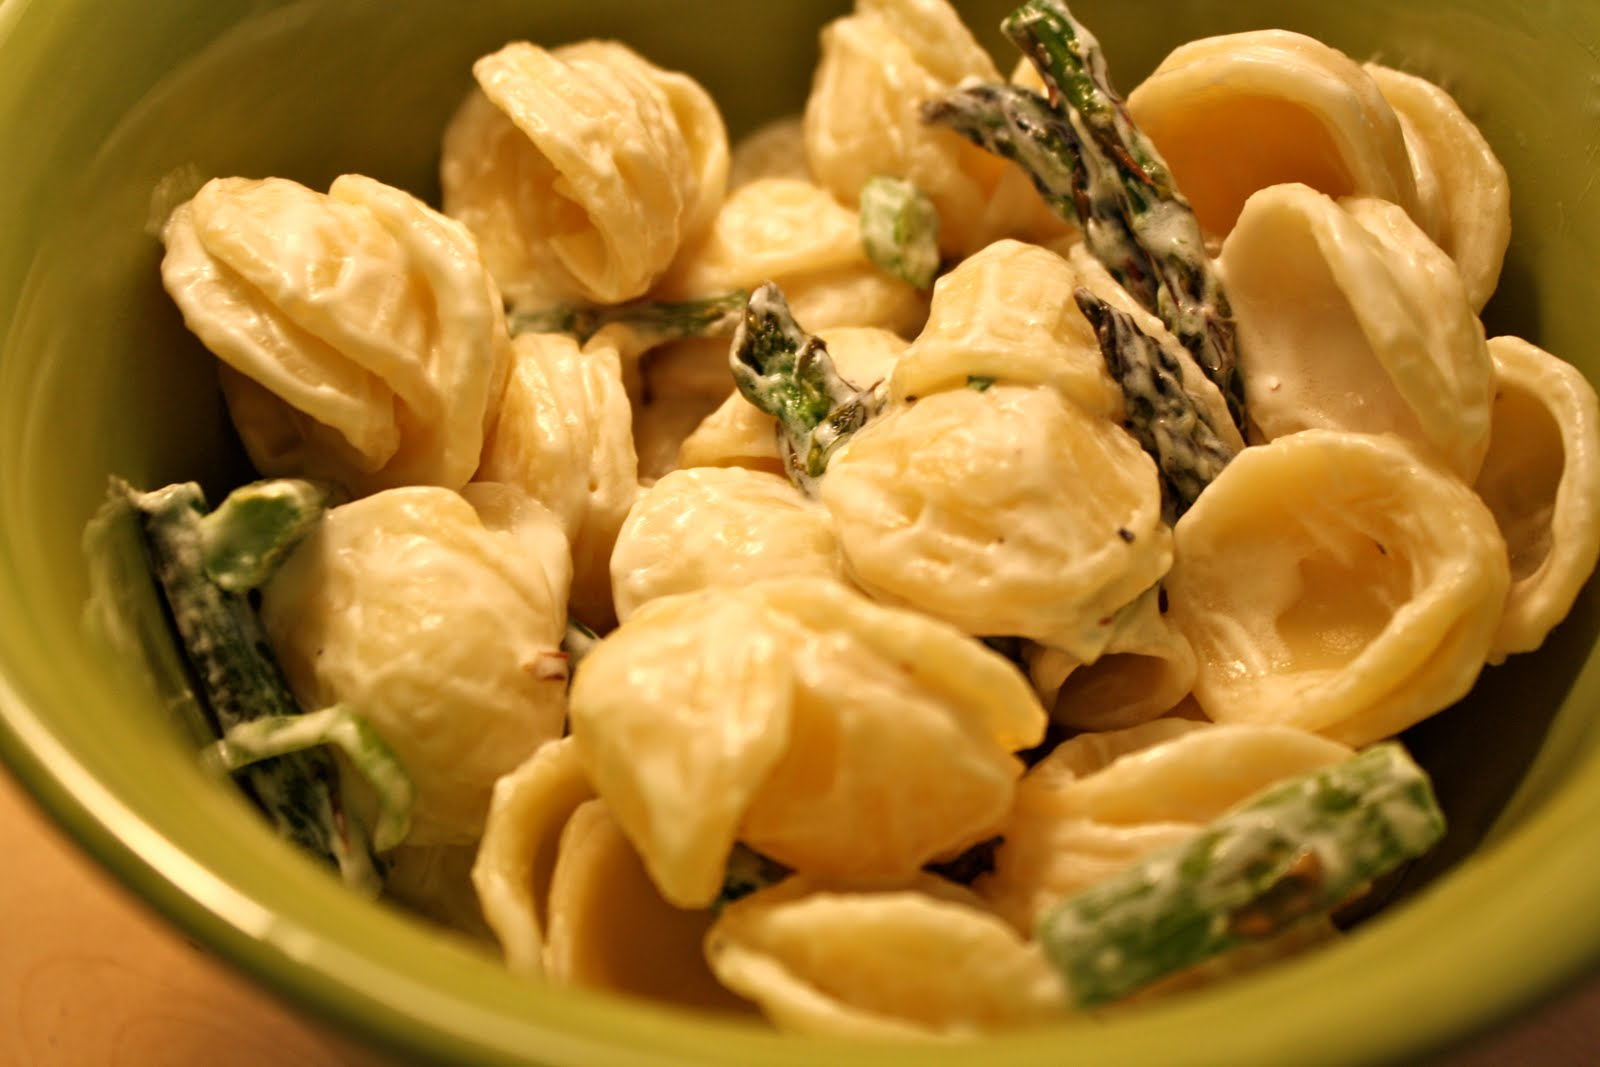 What's For Dinner?: Pasta with Goat Cheese and Roasted Asparagus